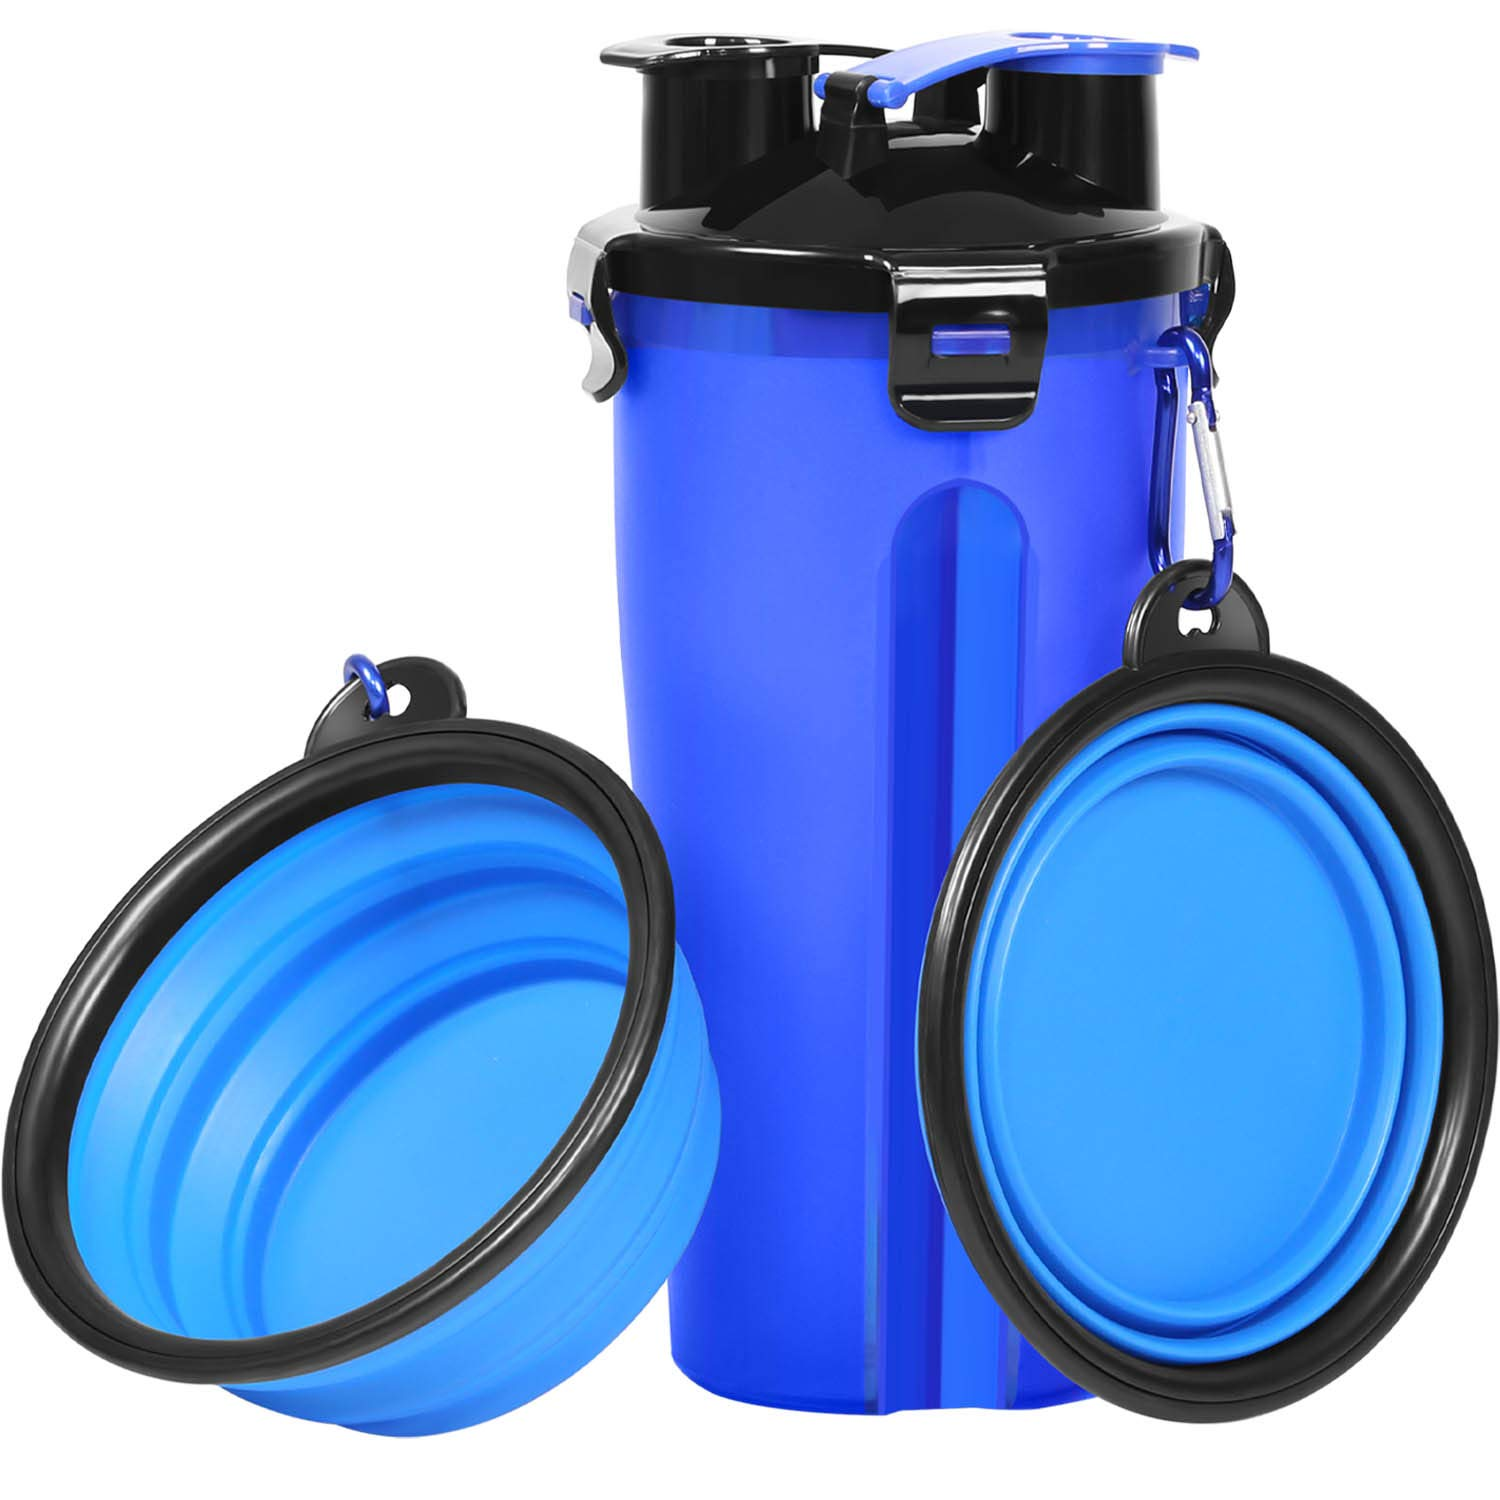 UPSKY Dog Water Bottle Dog Bowls for Traveling Pet Food Container 2-in-1 with Collapsible Dog Bowls, Outdoor Dog Water Bowls for Walking Hiking Travelling … (Blue)